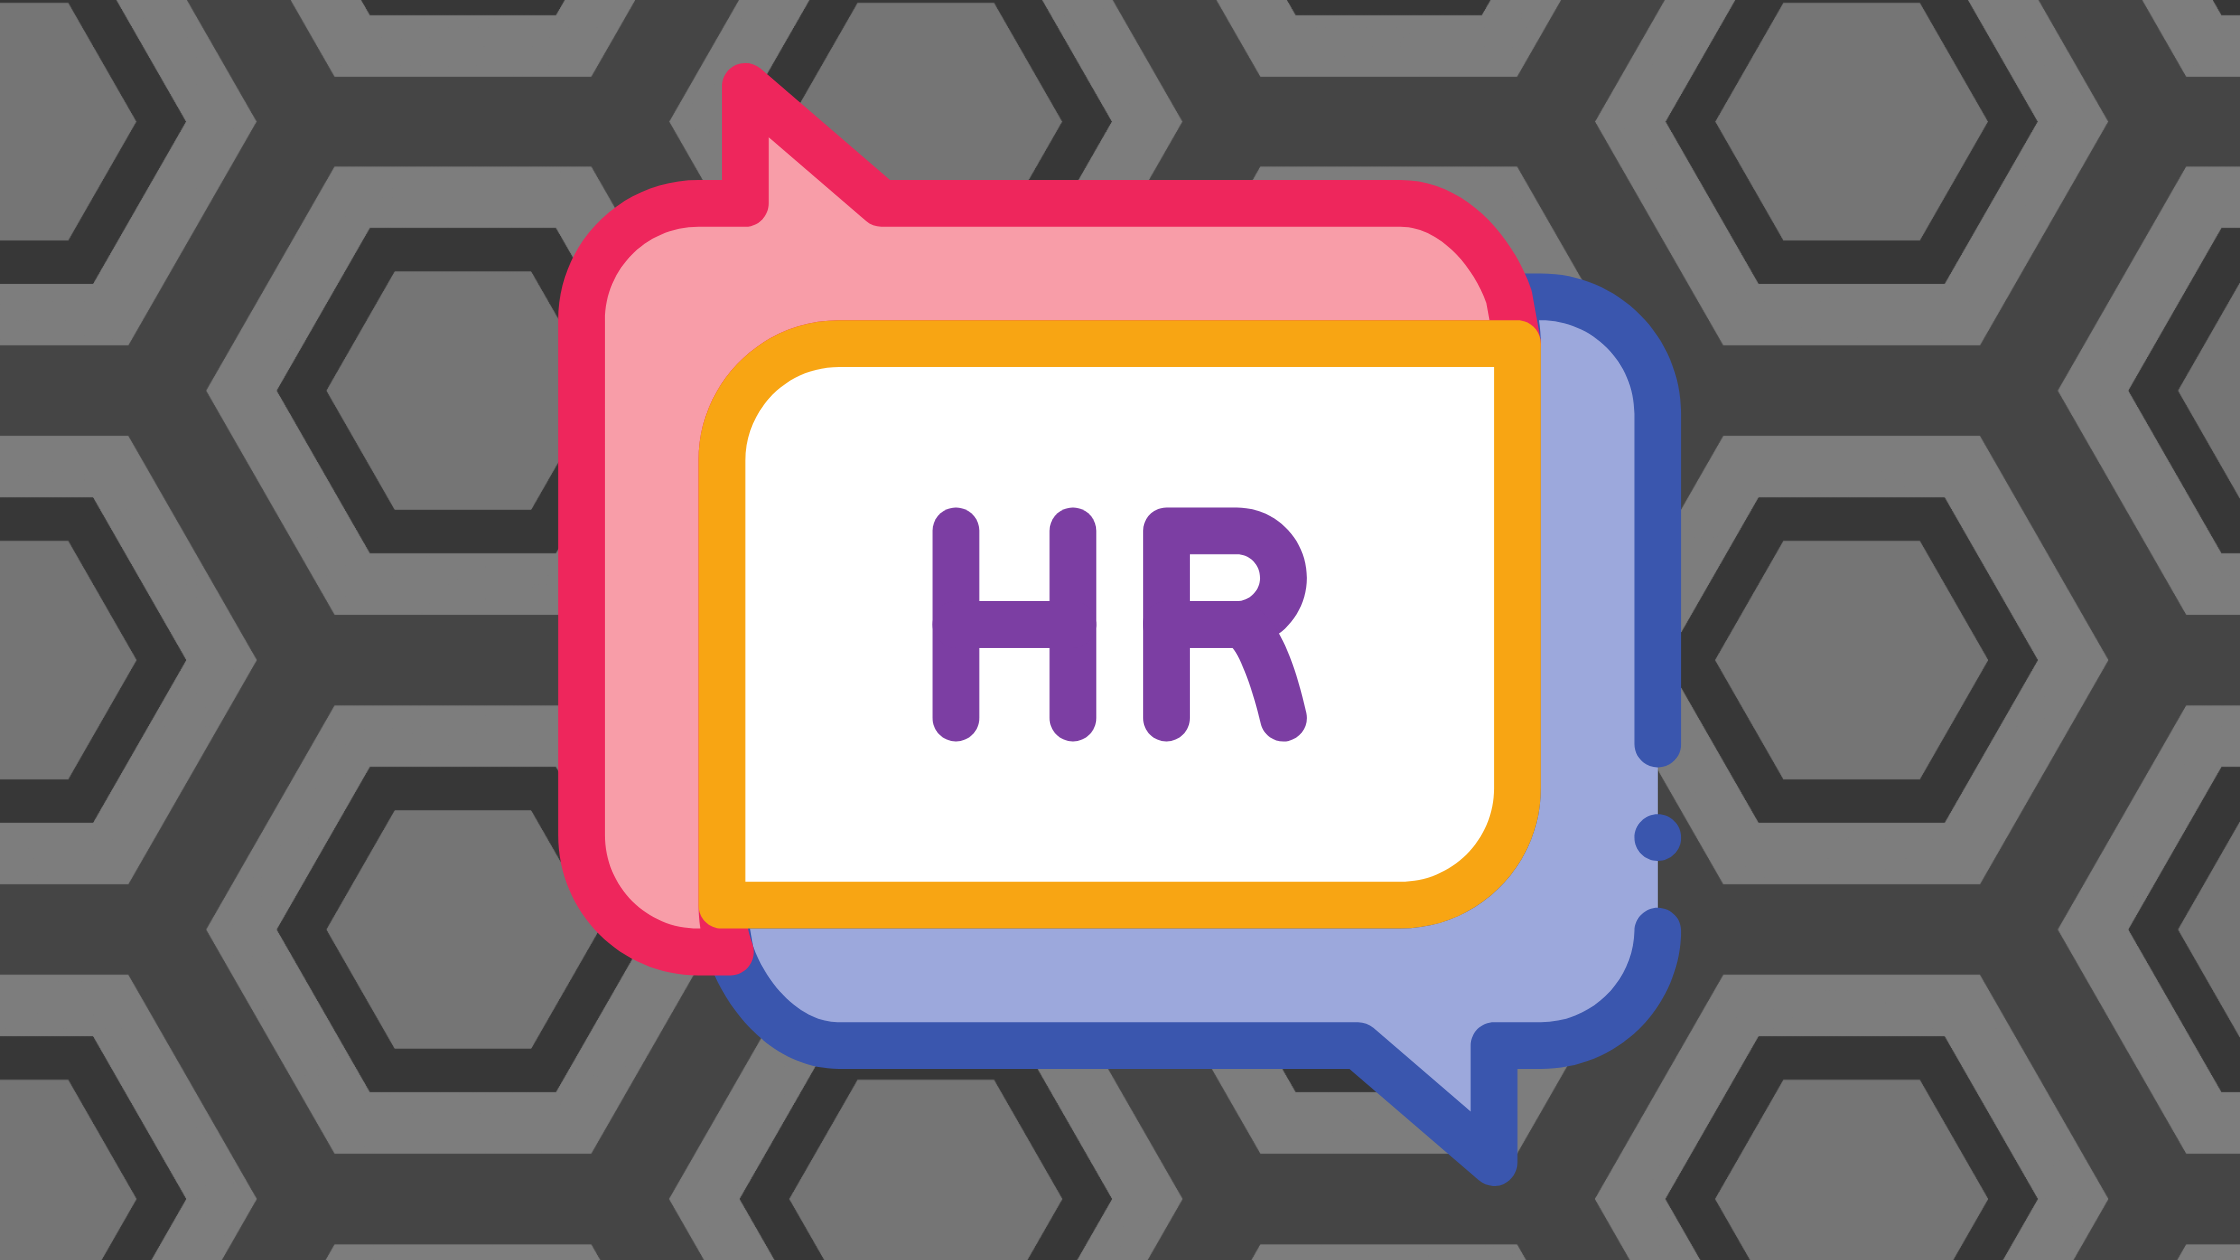 Functions of HR